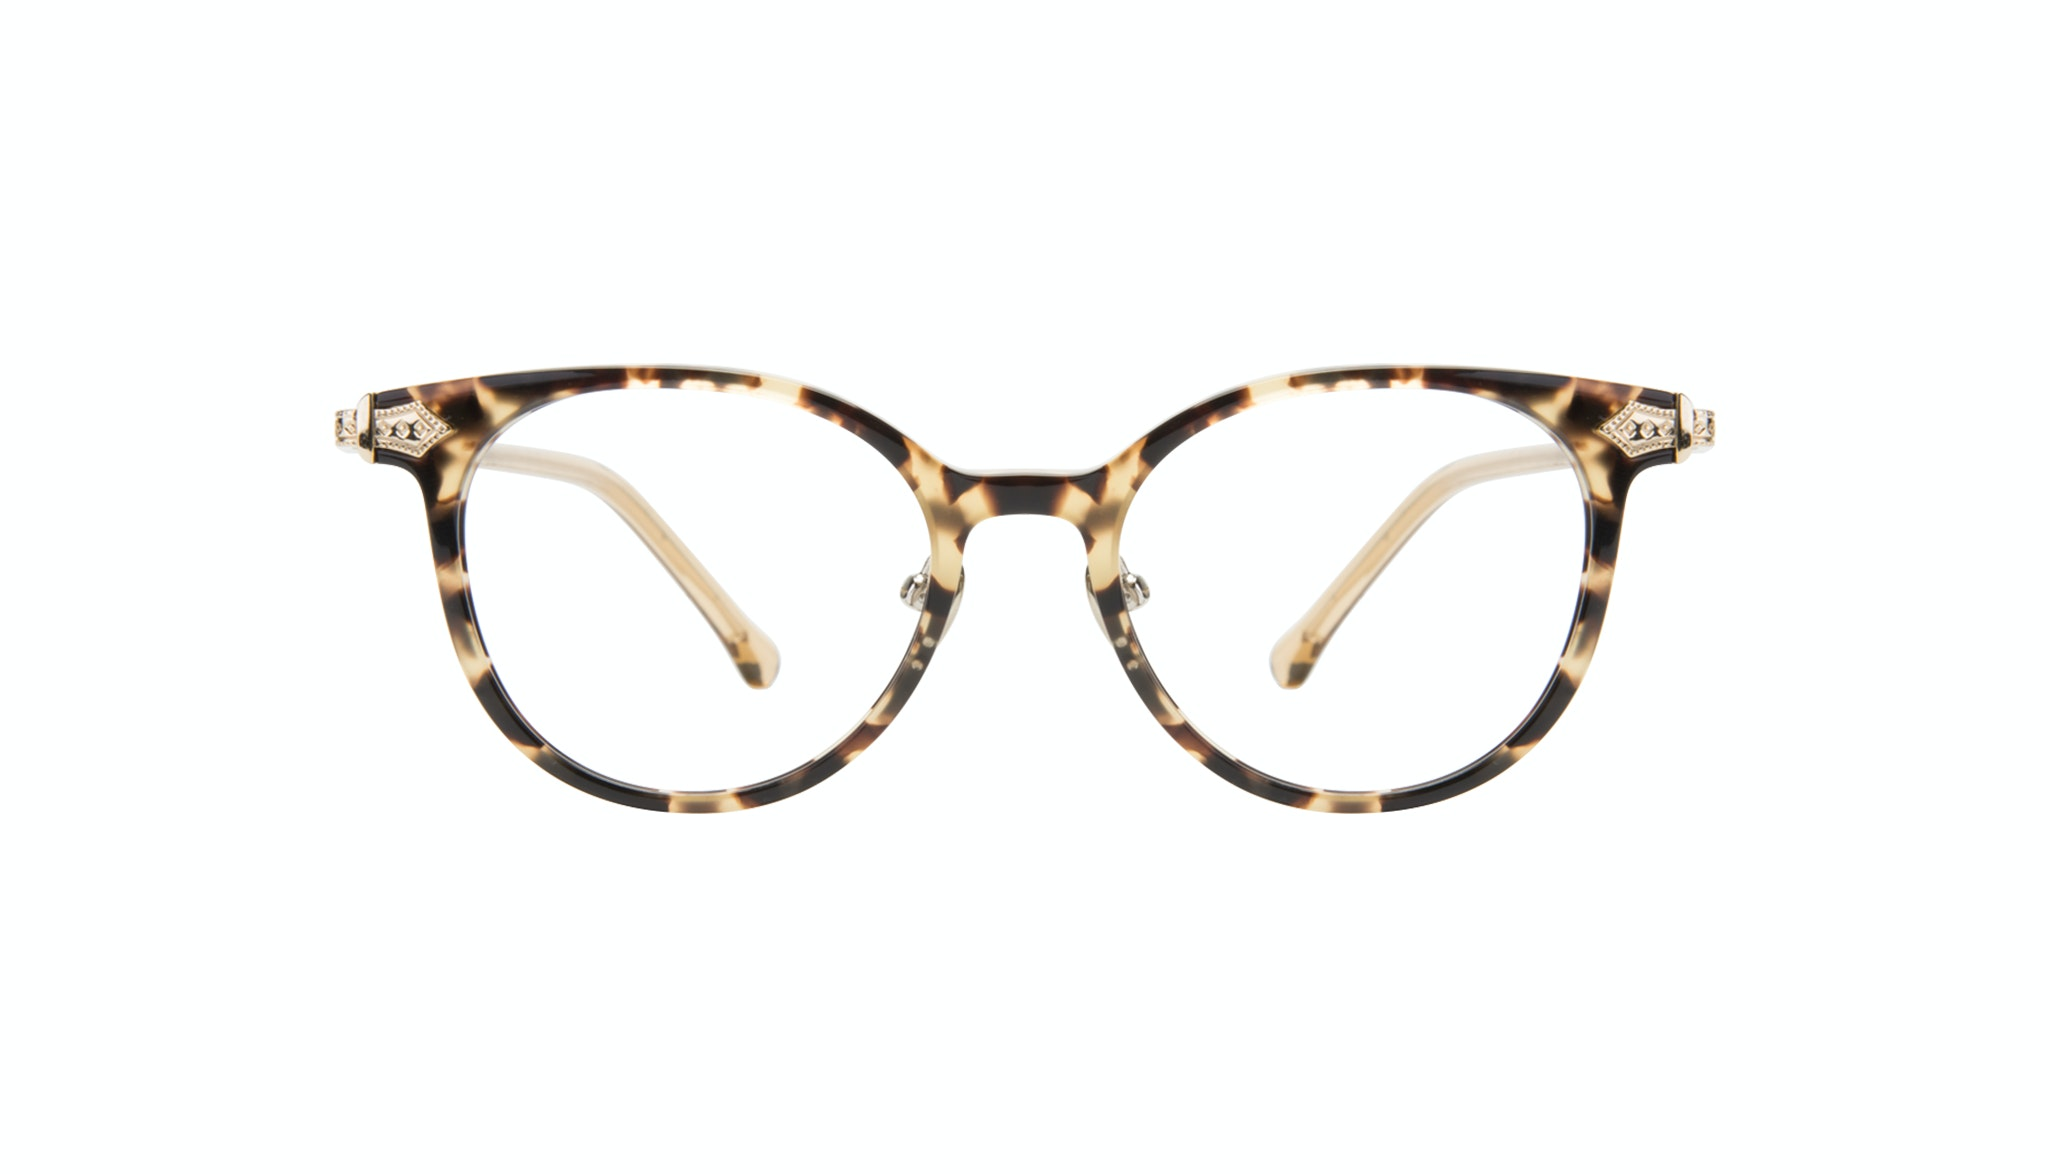 Affordable Fashion Glasses Round Eyeglasses Women Gem Golden Chip